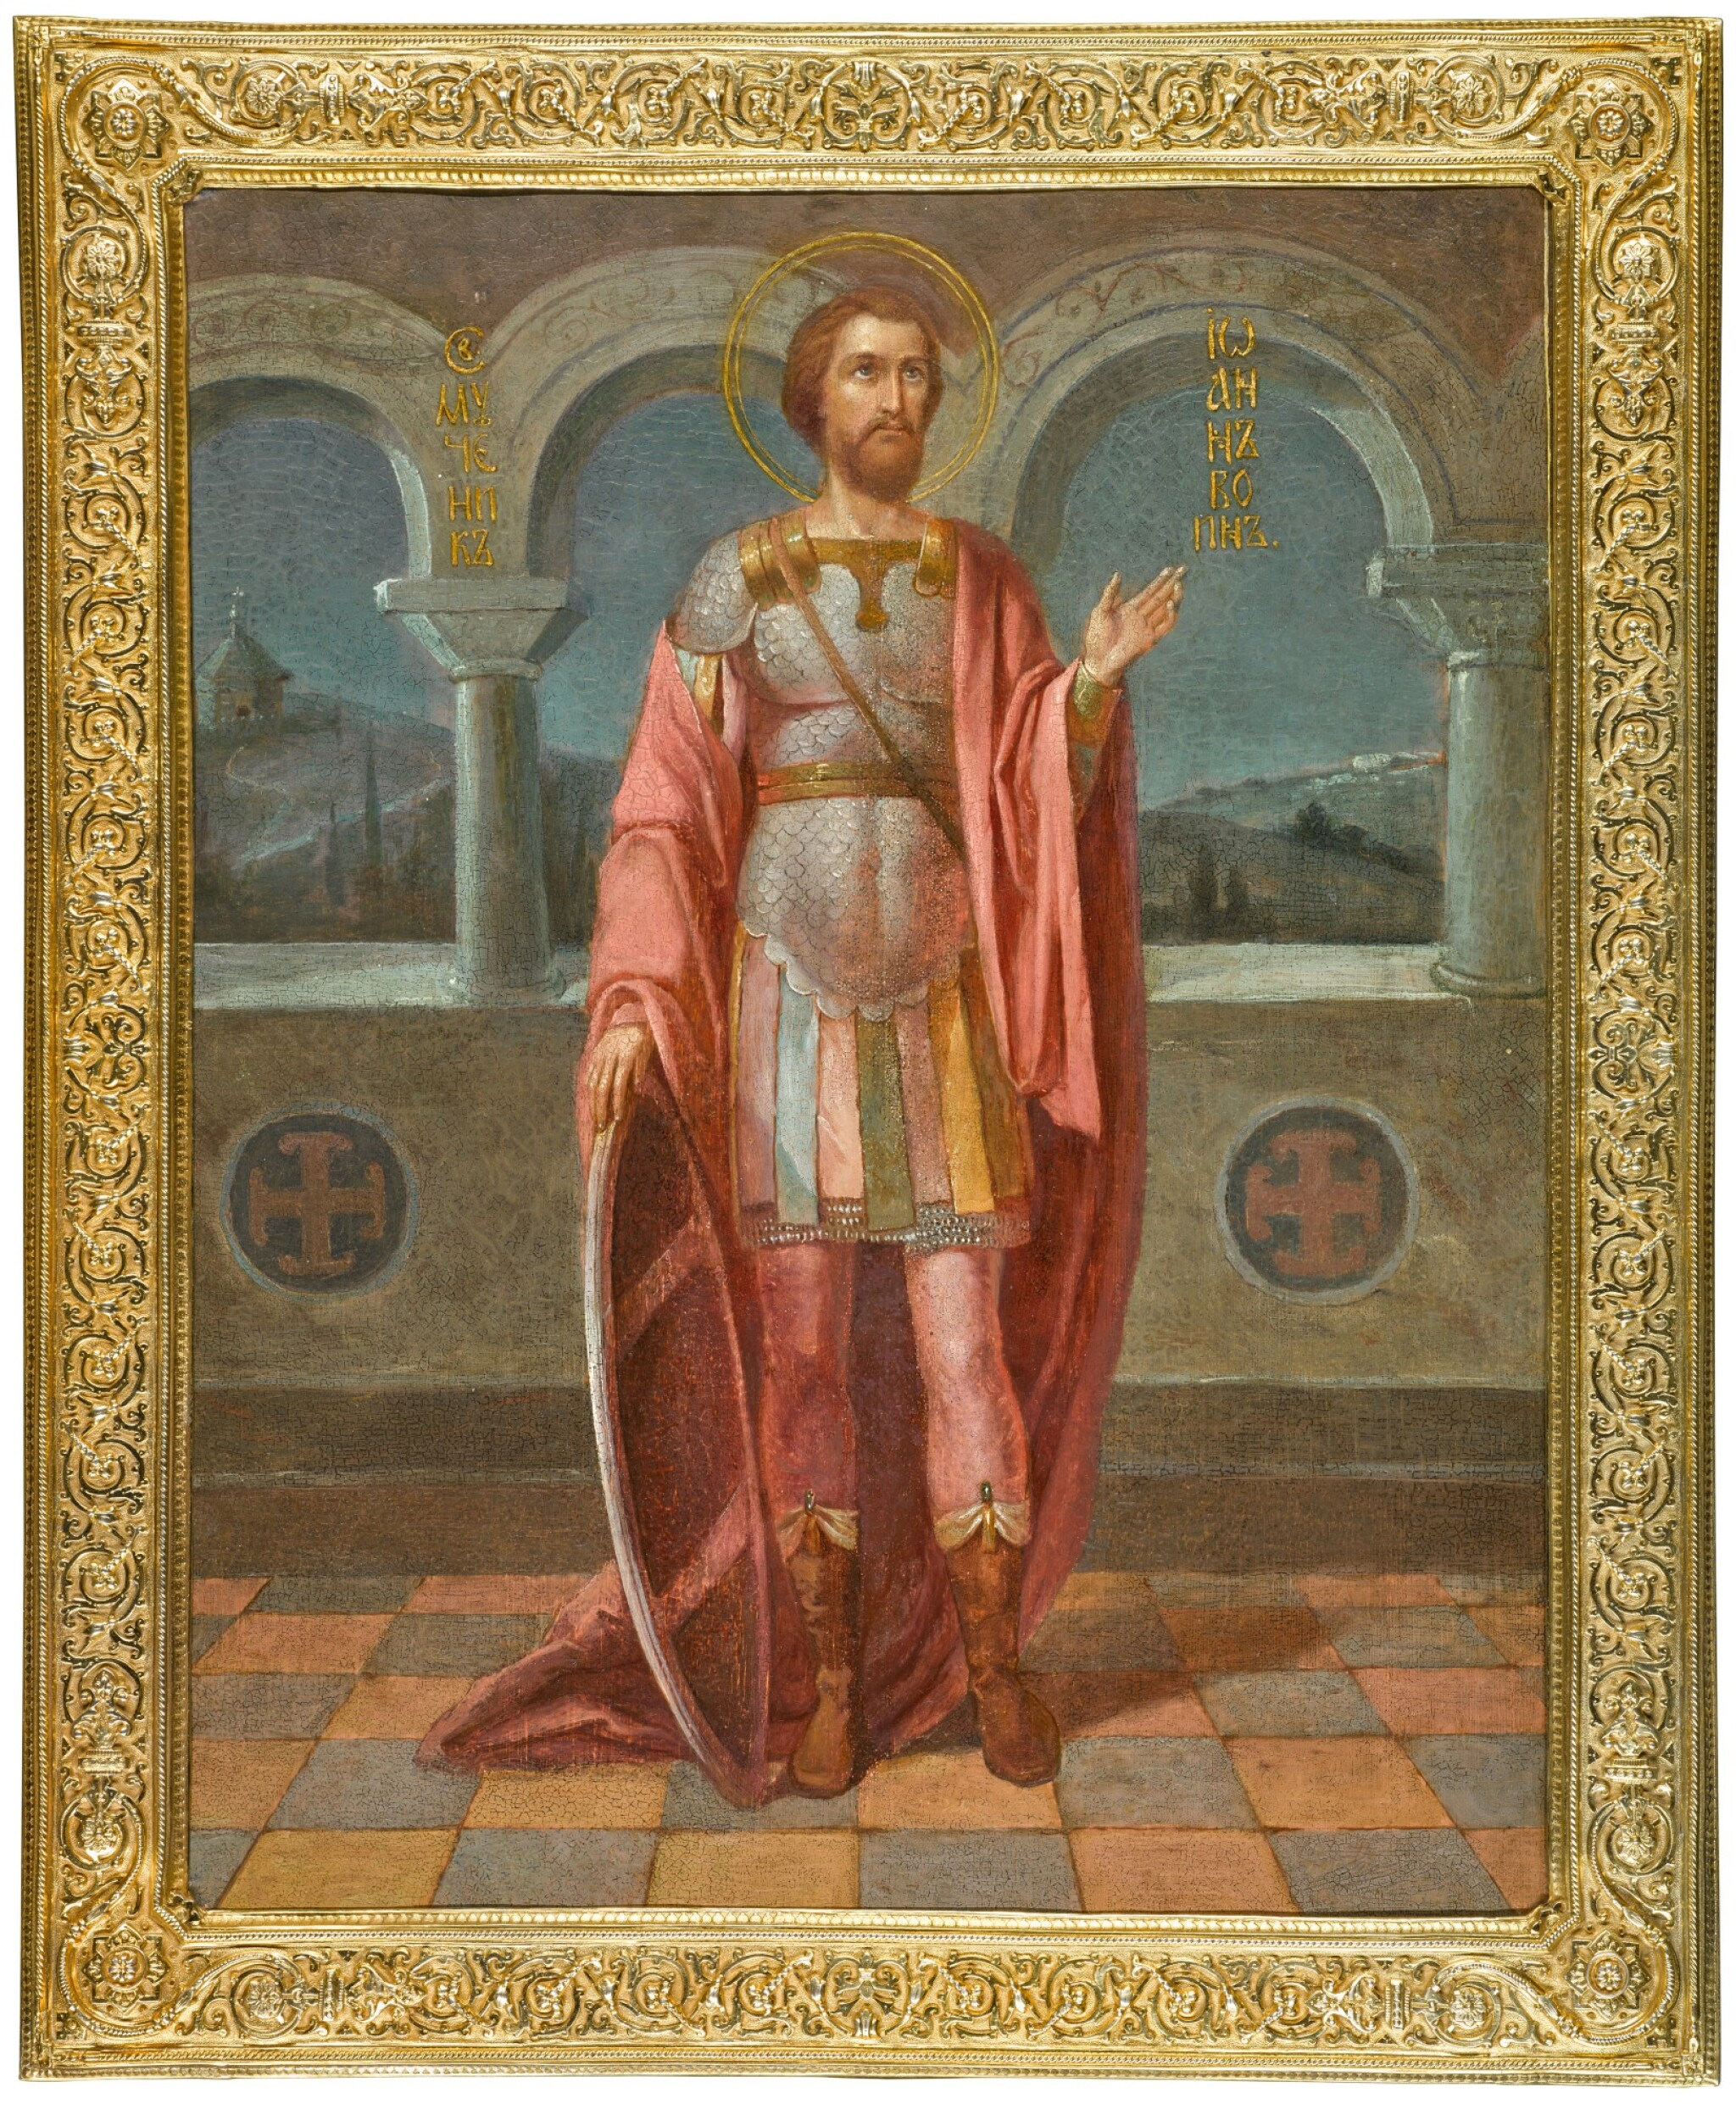 View full screen - View 1 of Lot 243. Saint John the Warrior in a silver-gilt frame, Pavel Ovchinnikov, Moscow, 1908-1917.